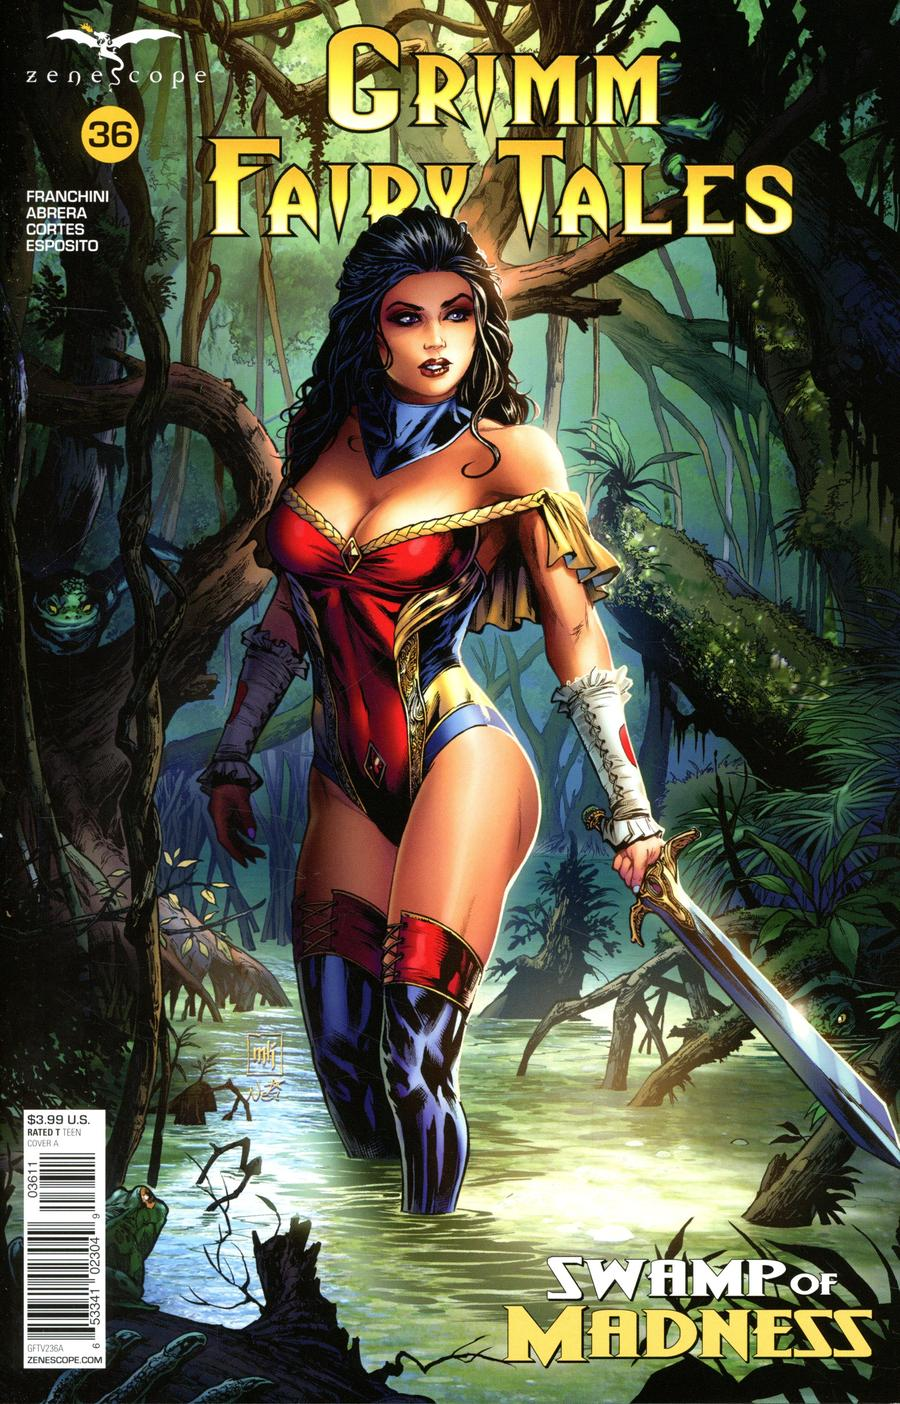 Grimm Fairy Tales Vol 2 #36 Cover A Mike Krome